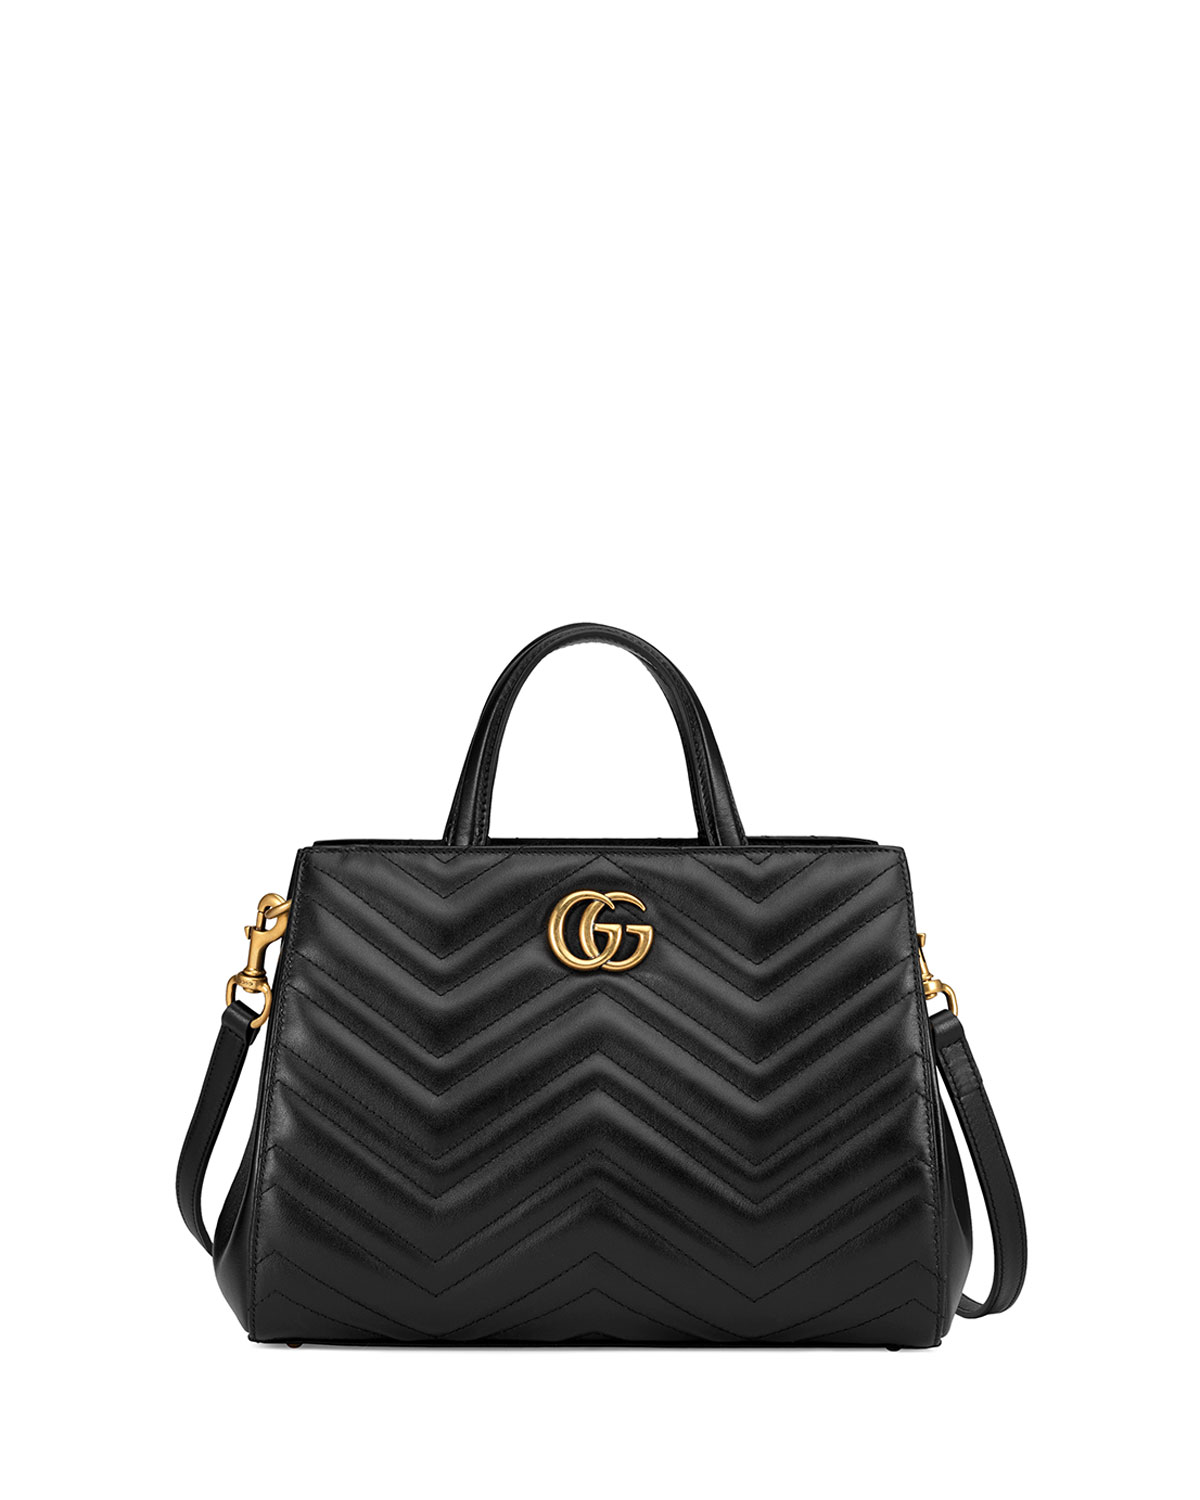 b793fde3b3d281 Gucci GG Marmont Small Matelassé Top-Handle Bag | Neiman Marcus